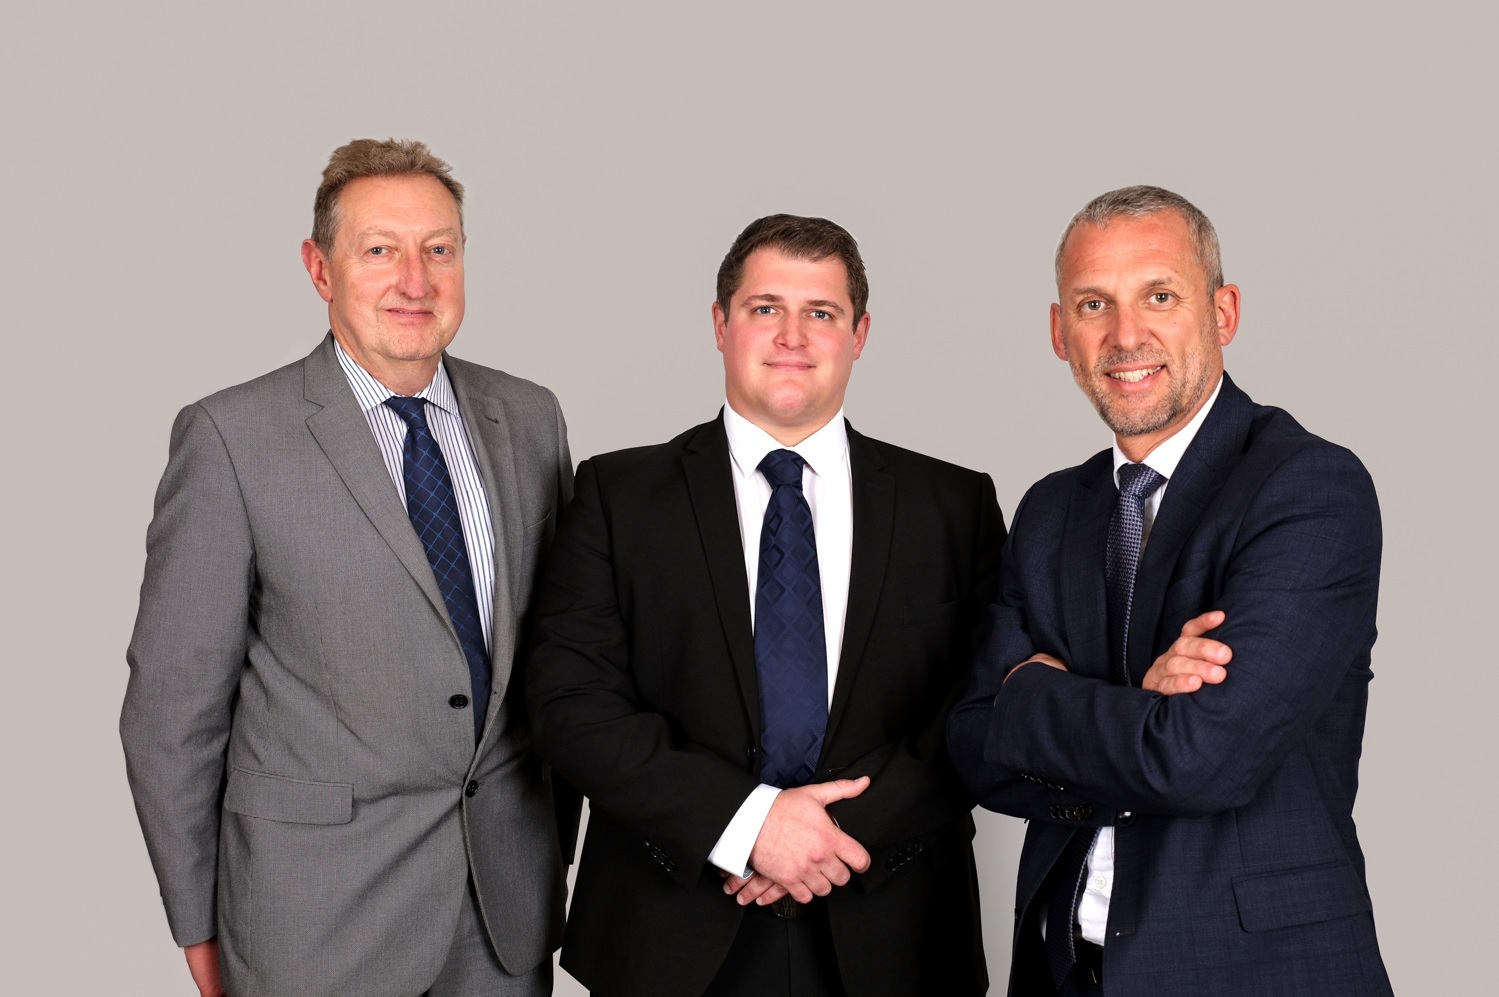 GROWTH PLANS: Chris Jones, James Willcock and Andrew Lamb of Harris Lamb's residential team.